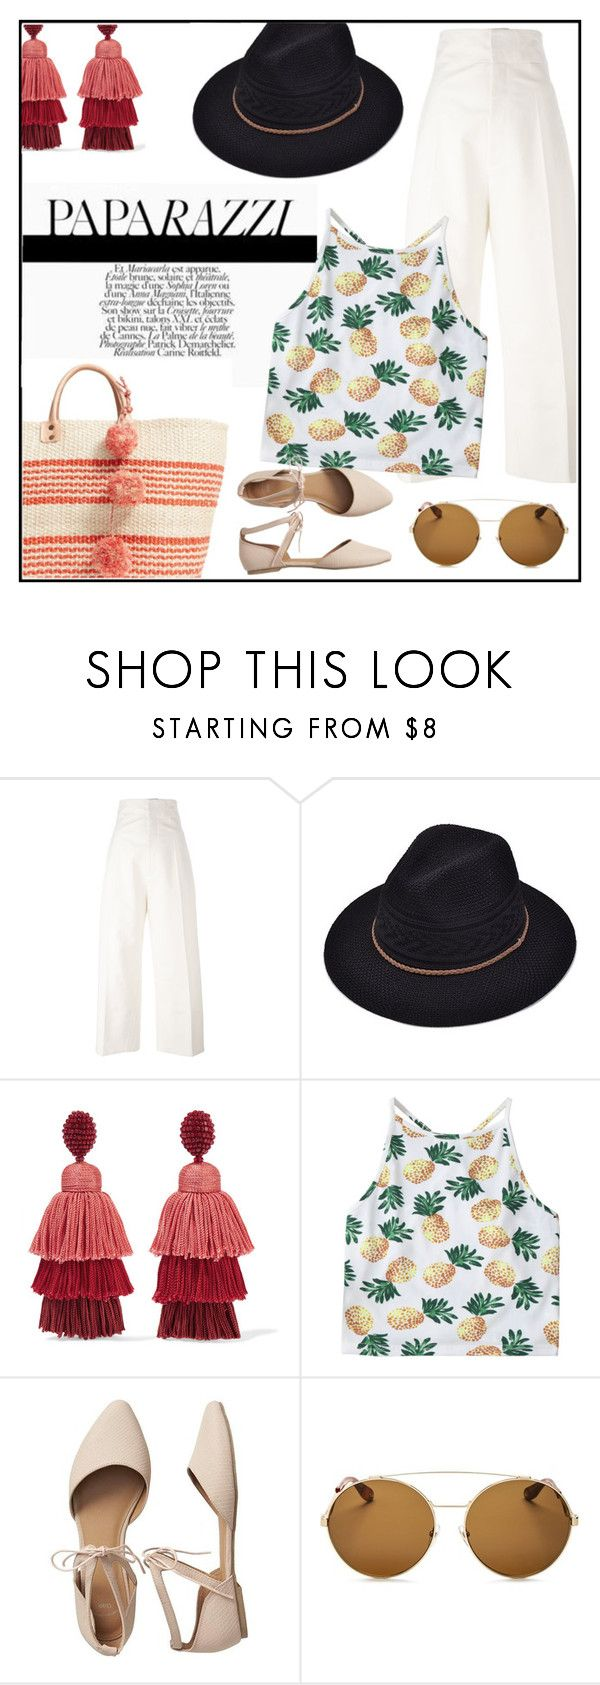 """Sunday Runway"" by bebebelabee on Polyvore featuring Jacquemus, Oscar de la Renta, Gap, Givenchy and Mar y Sol"